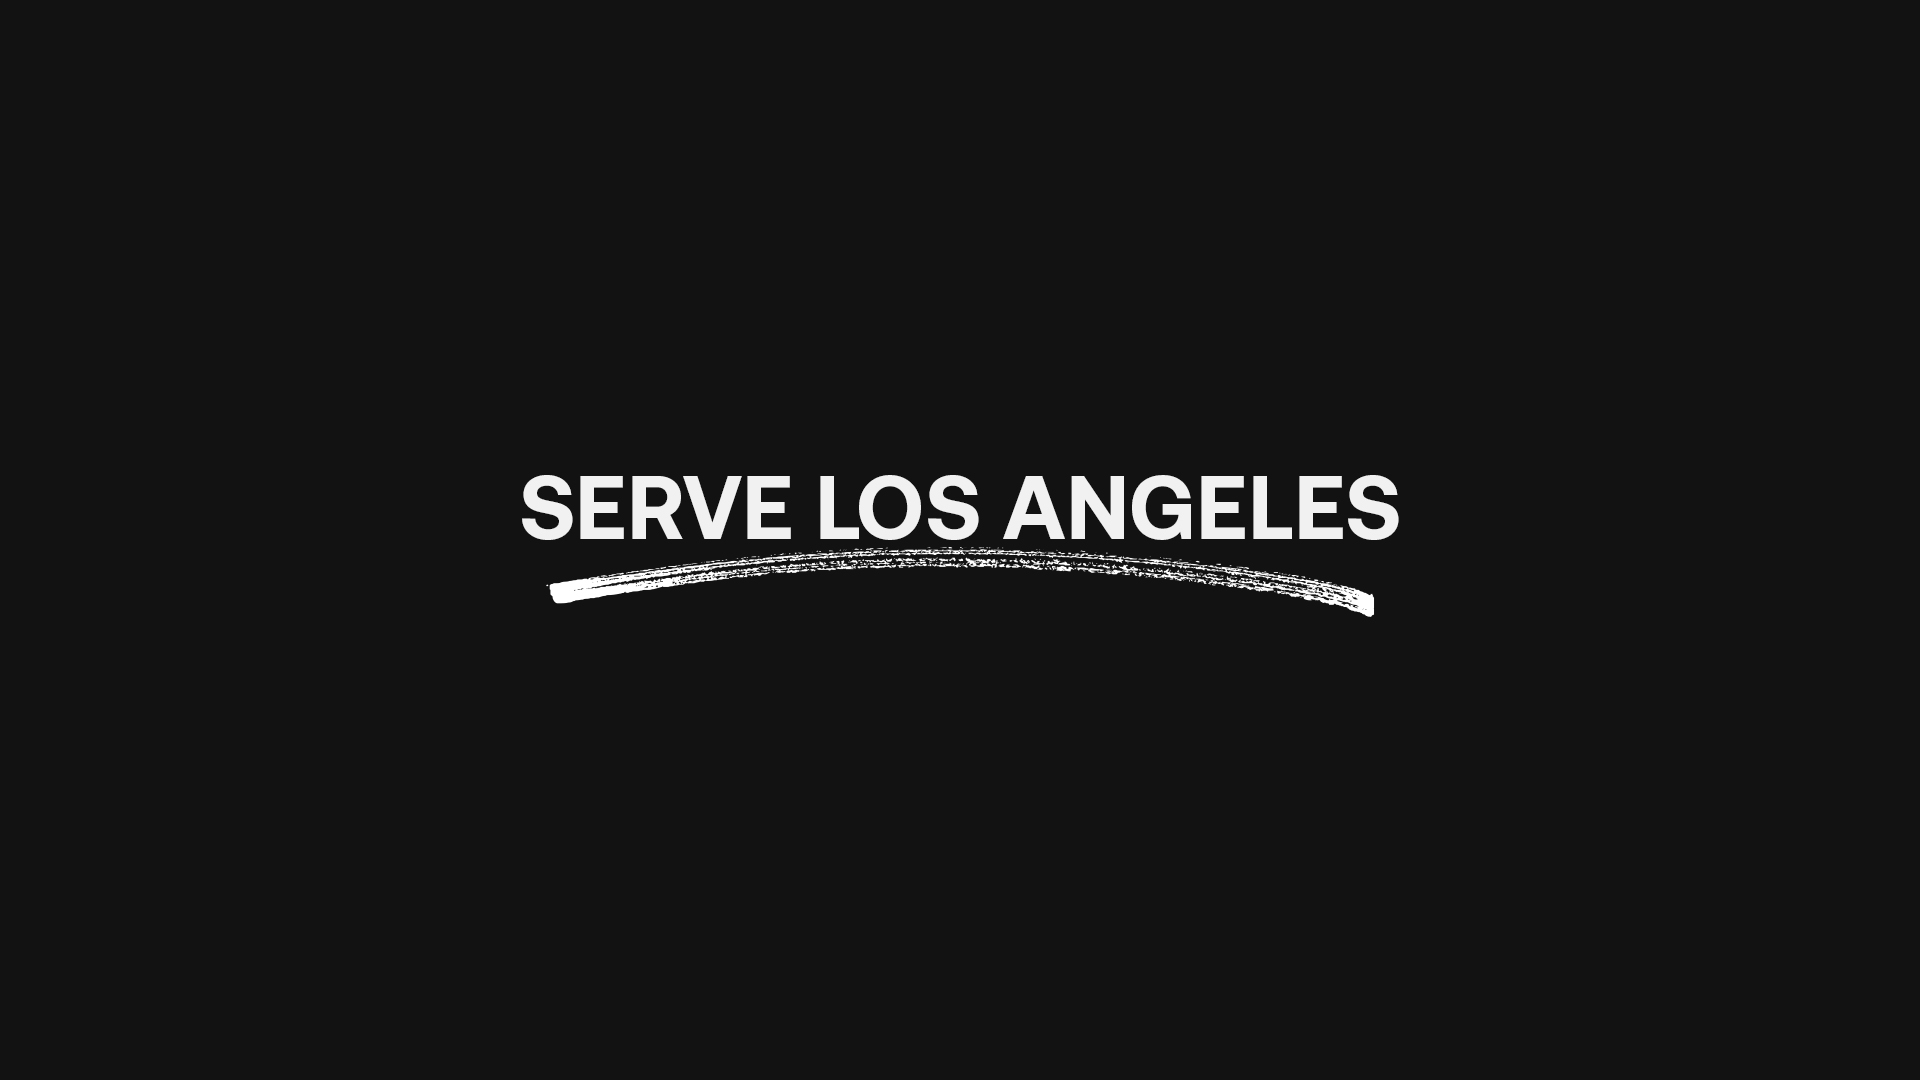 Serve Los Angeles